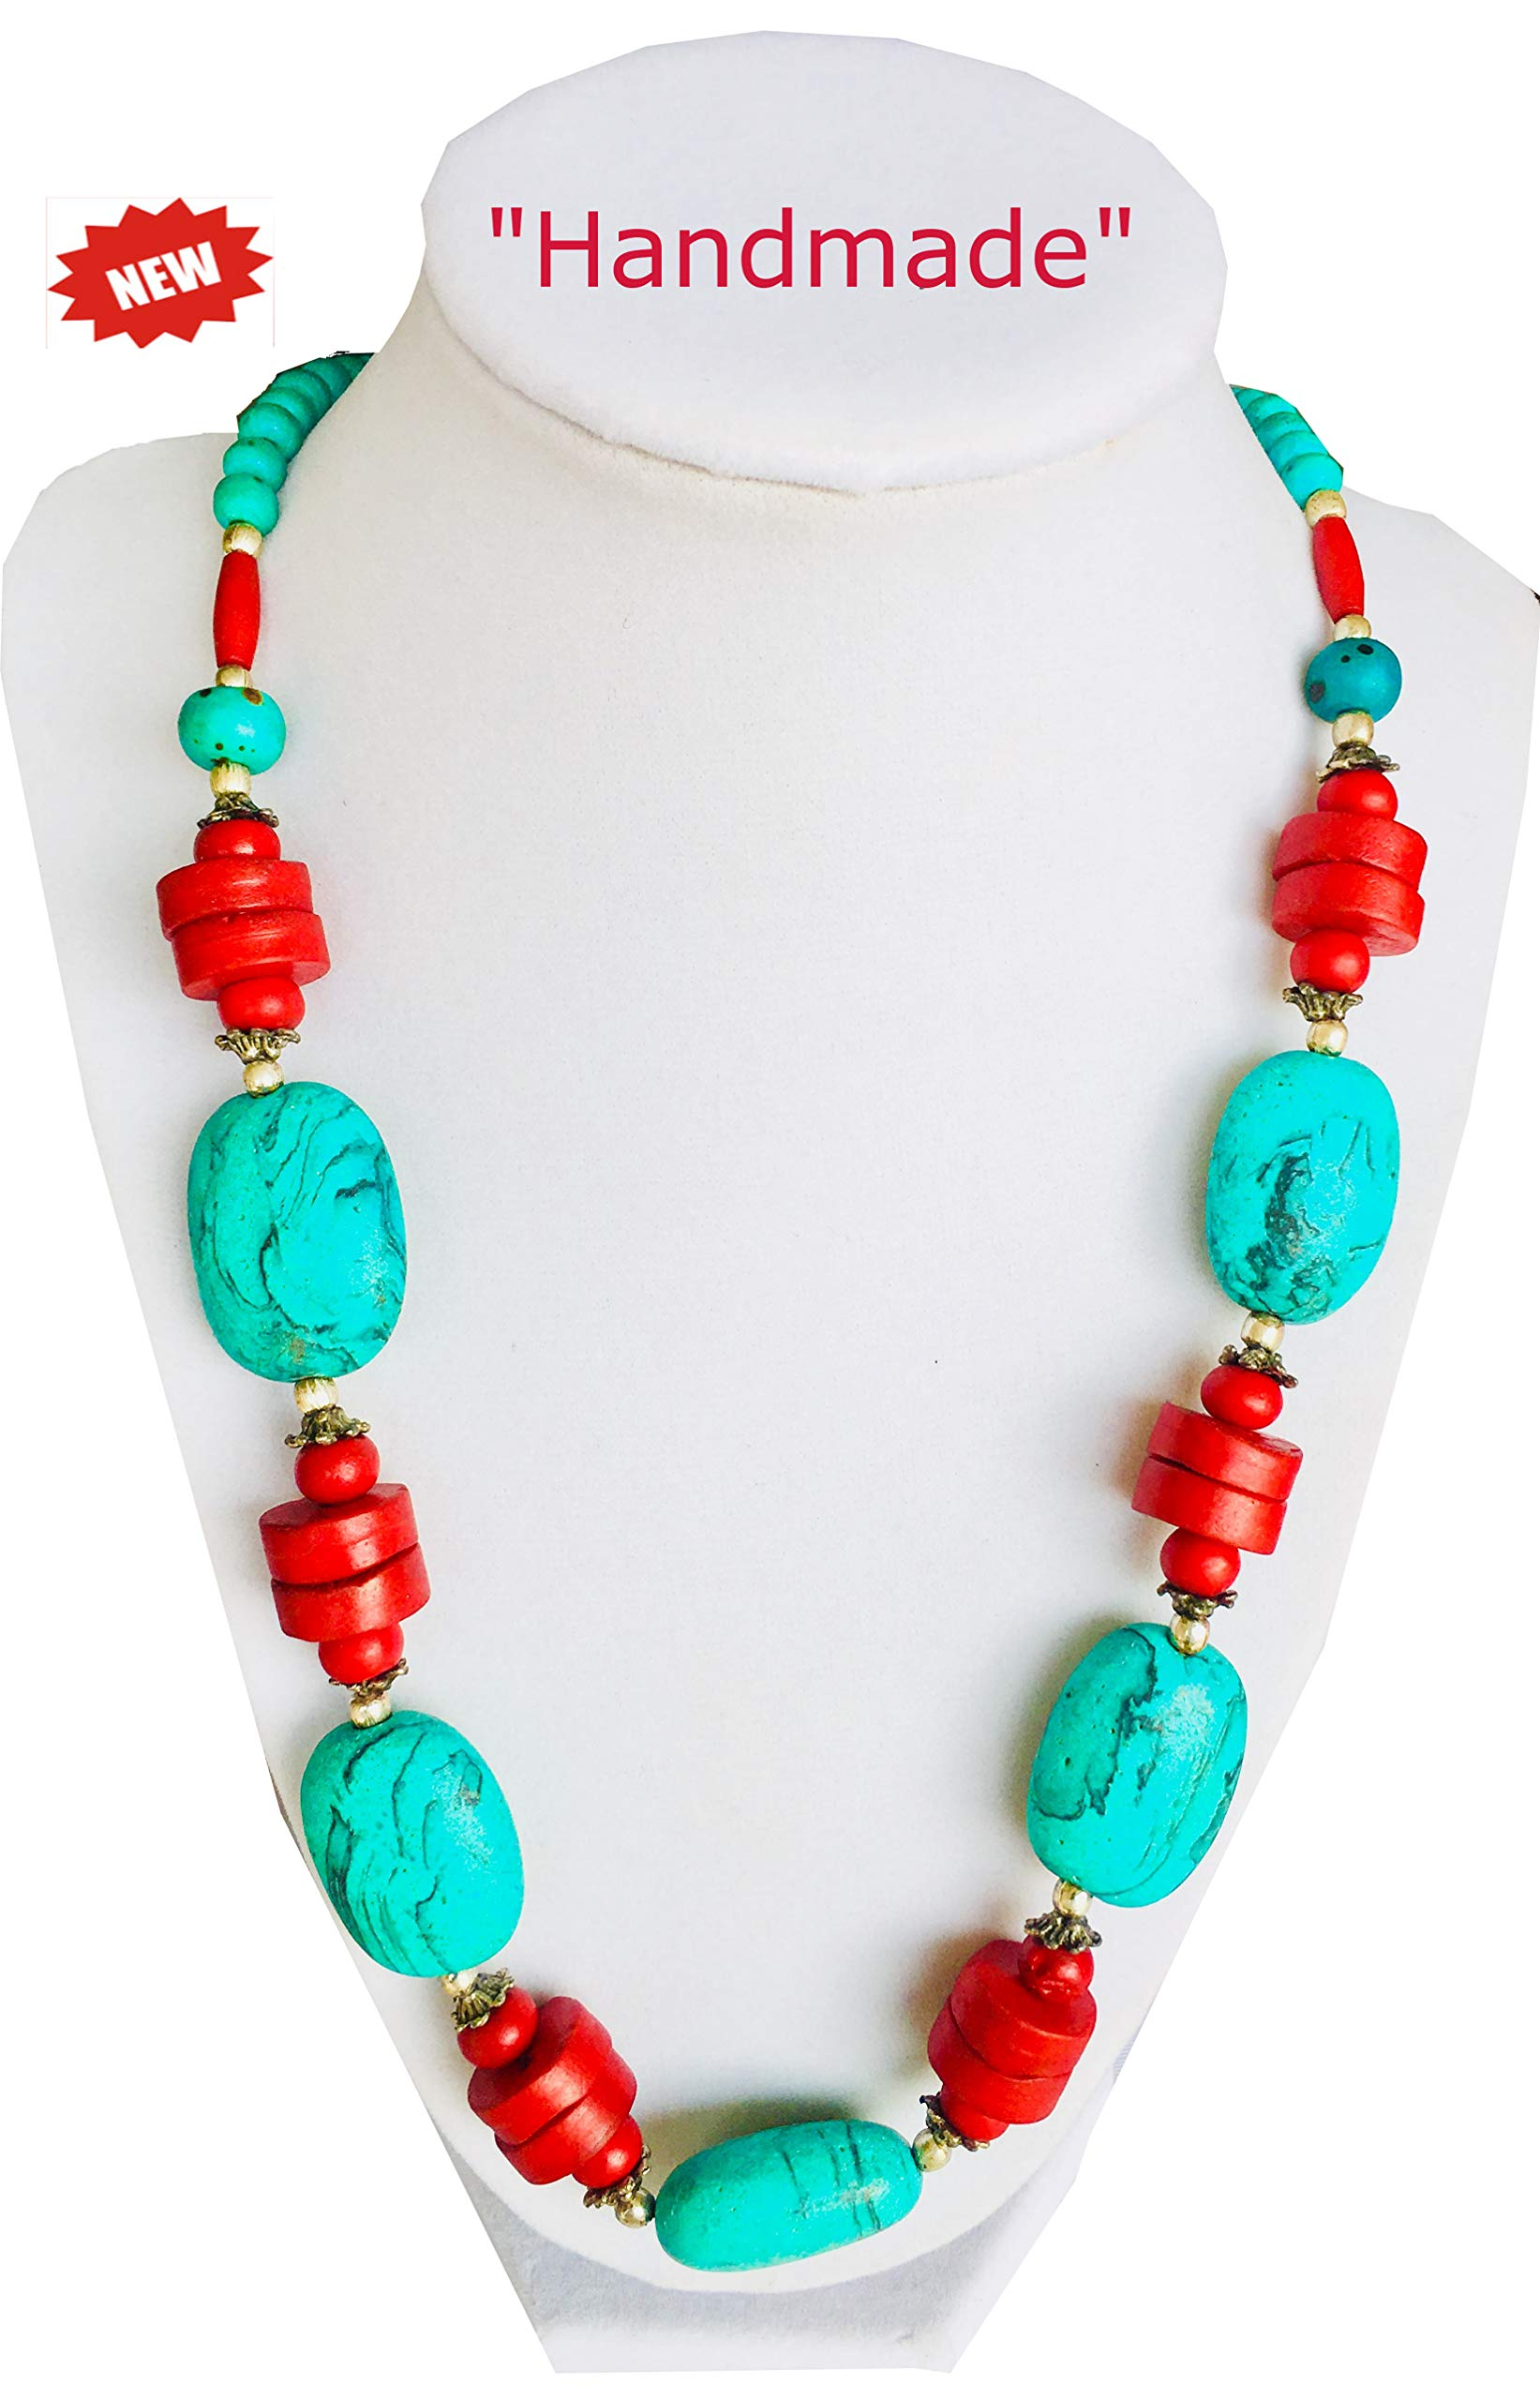 Himalayan Sherpa Handmade Multi-Colored Multi Colors Gemstone Necklace with Orange Color Big Beads Pendant and Small Beads Plus Painted Stones